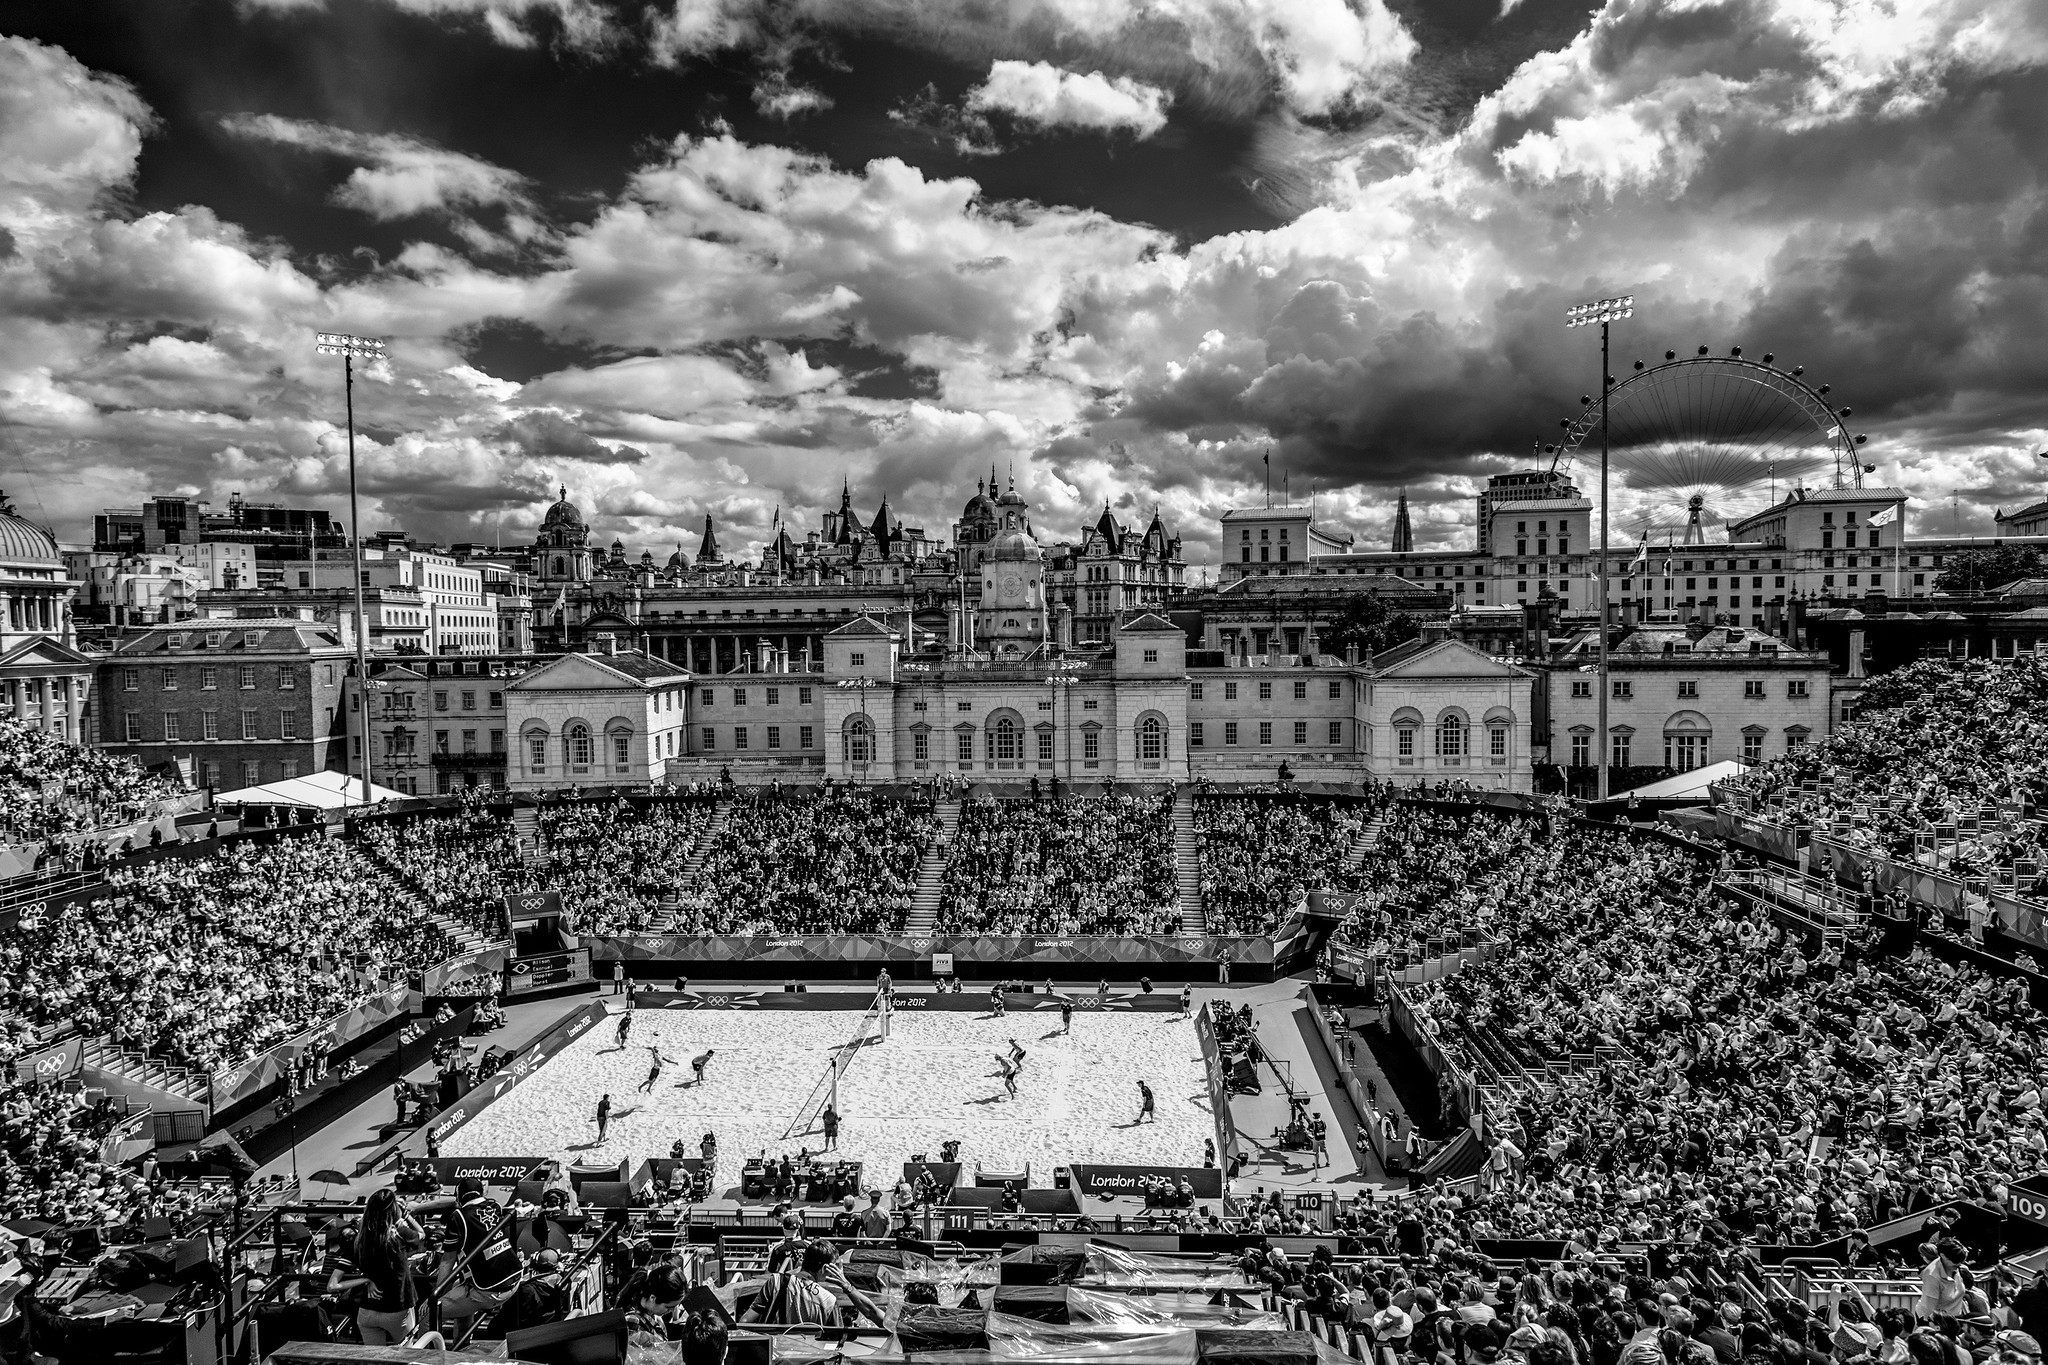 The juxtaposition of beach volleyball and the London skyline in 2012.